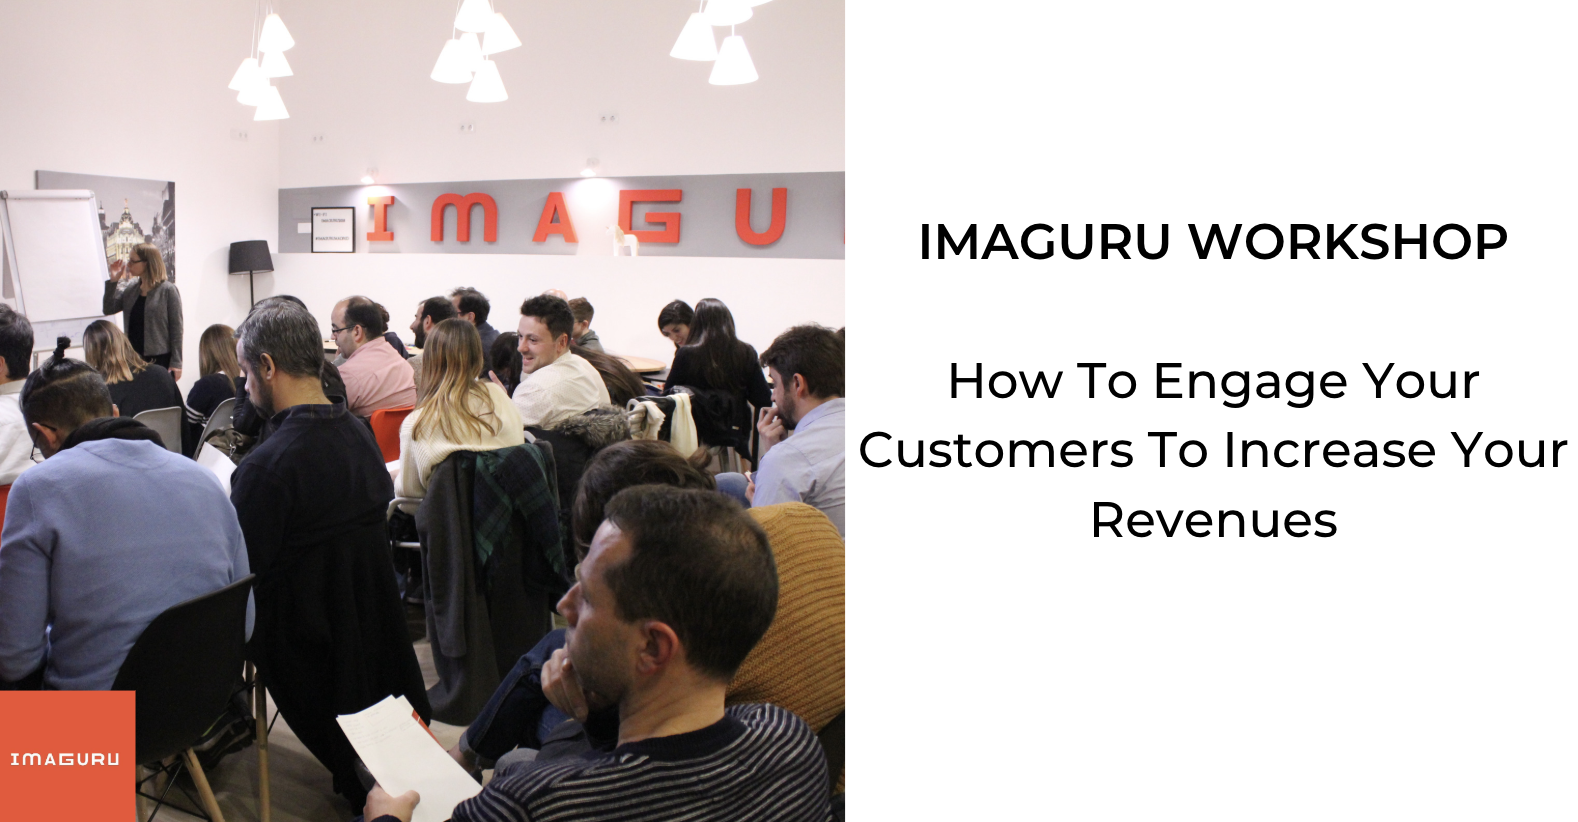 Workshop: How To Engage Your Customers To Increase Your Revenues